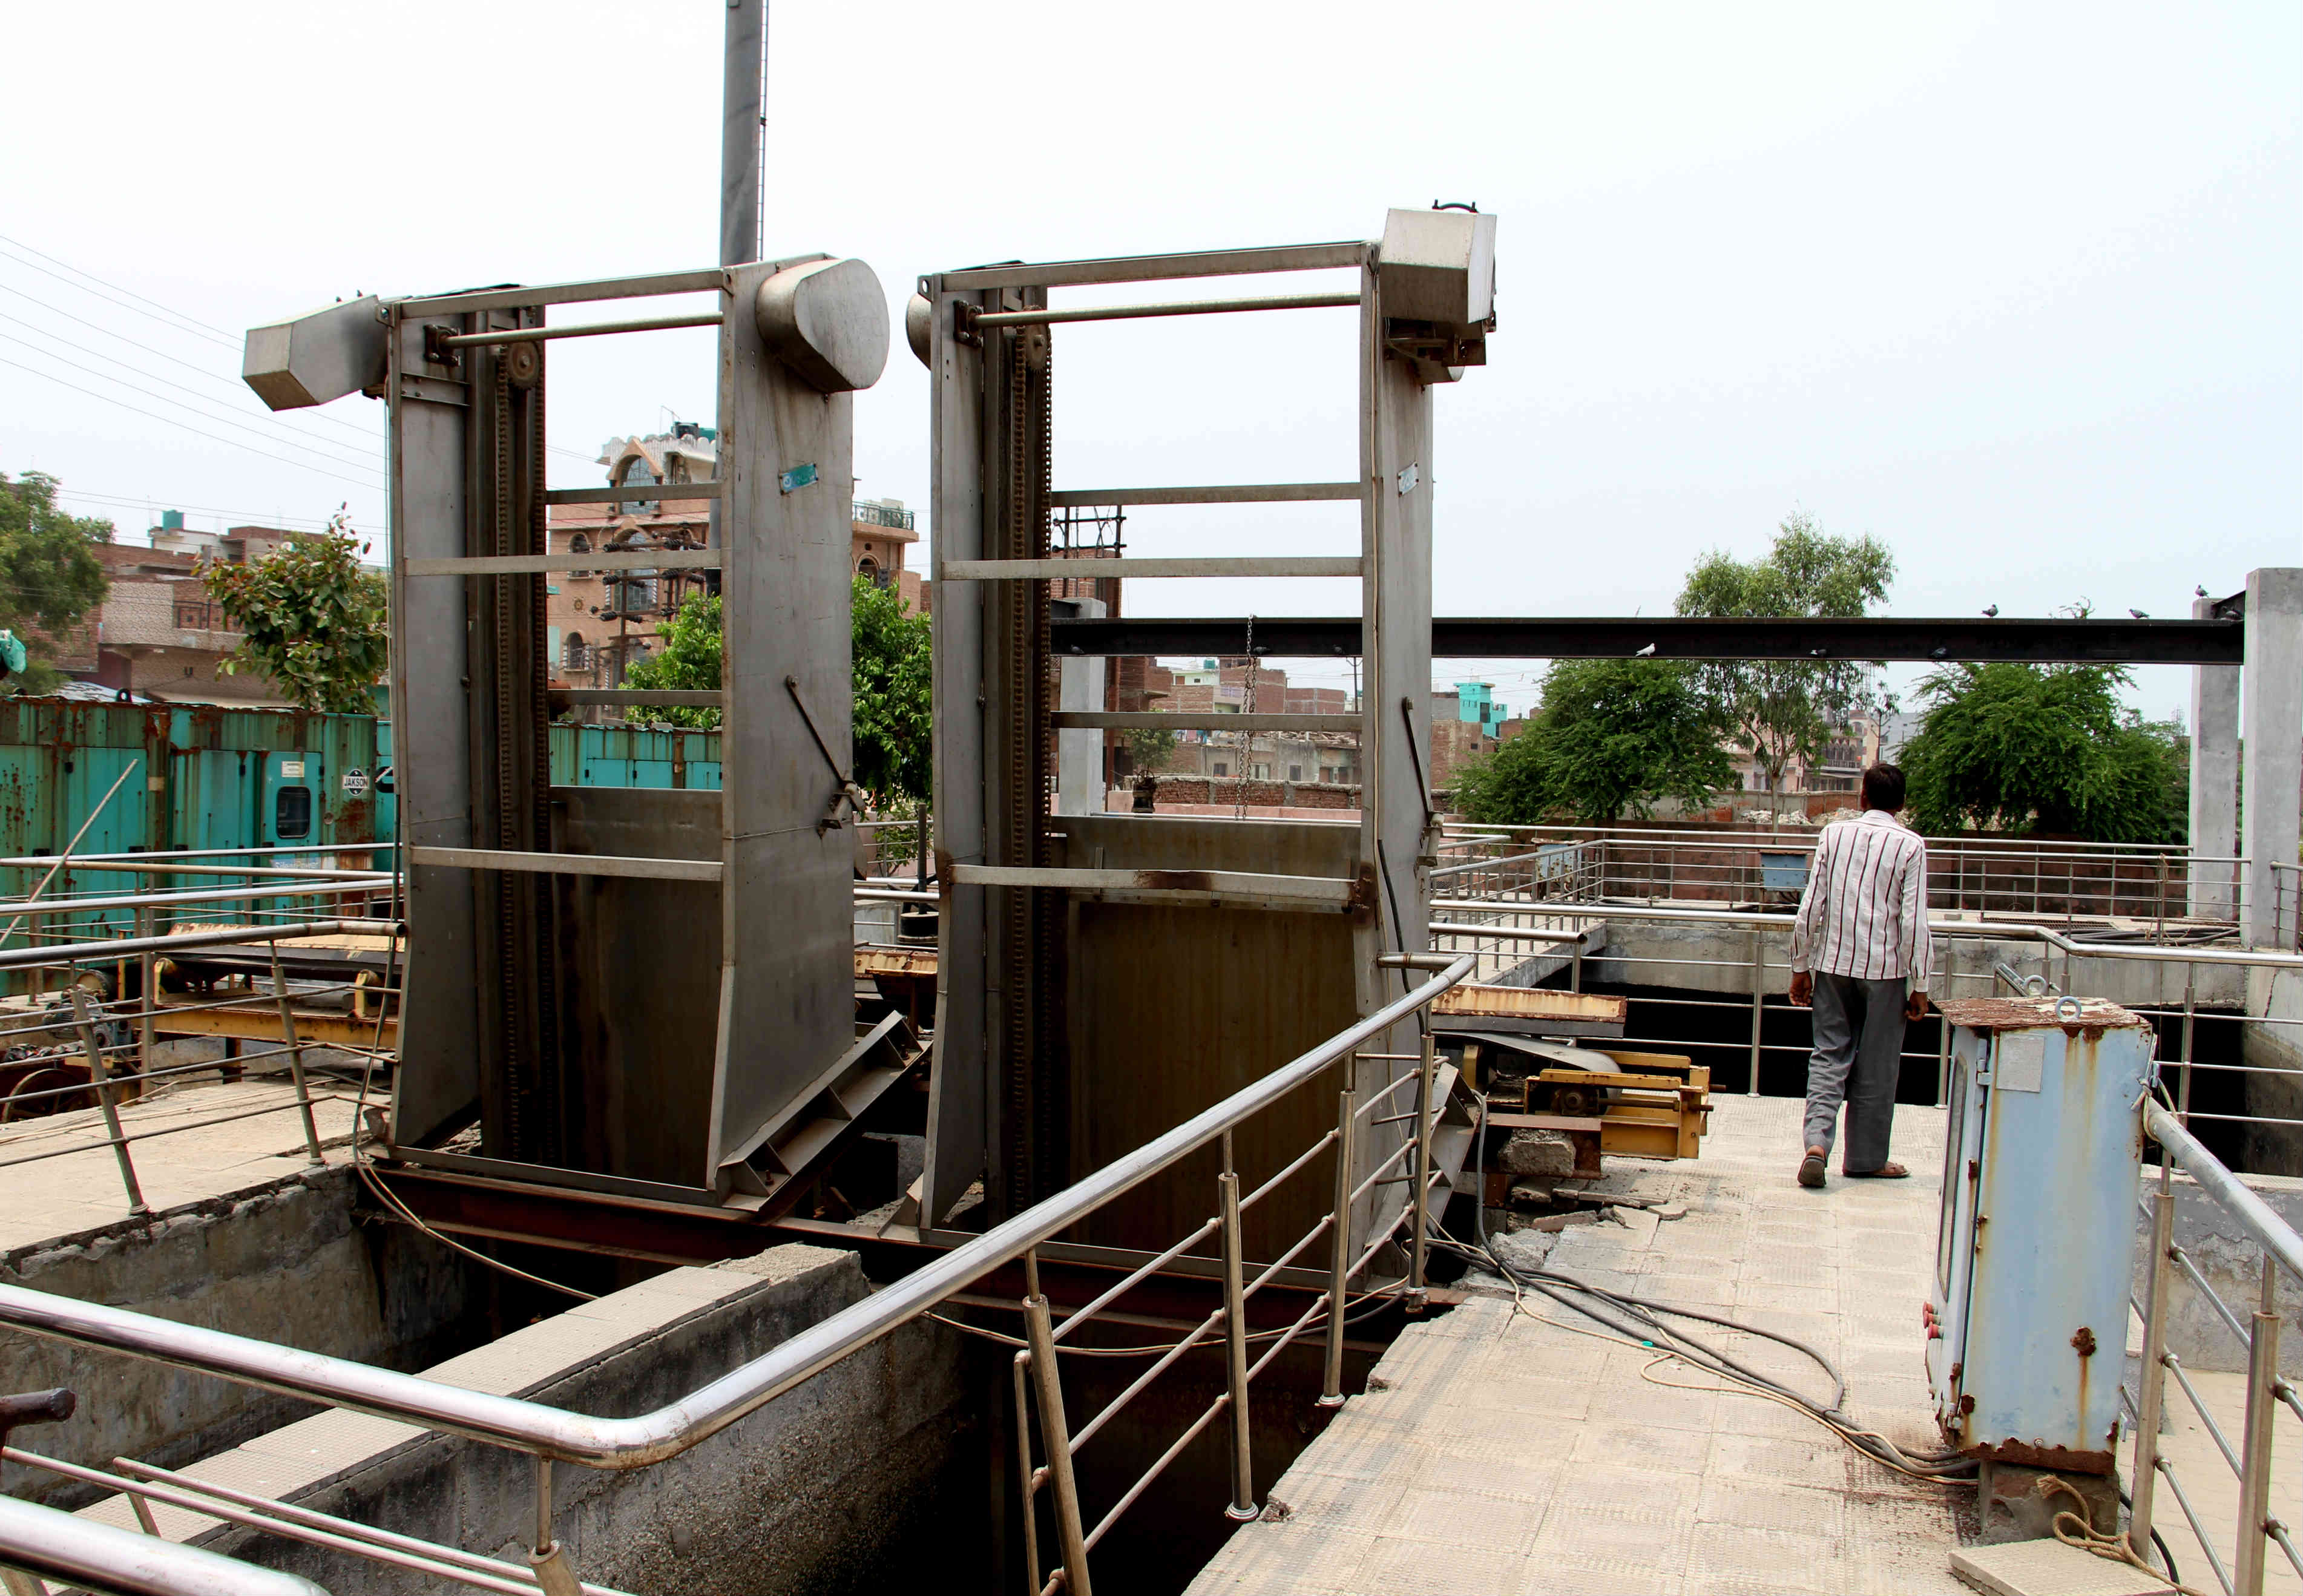 This machine to remove plastic waste from the sewage tank has been dysfunctional for two months. Photo credit: Aabid Shafi